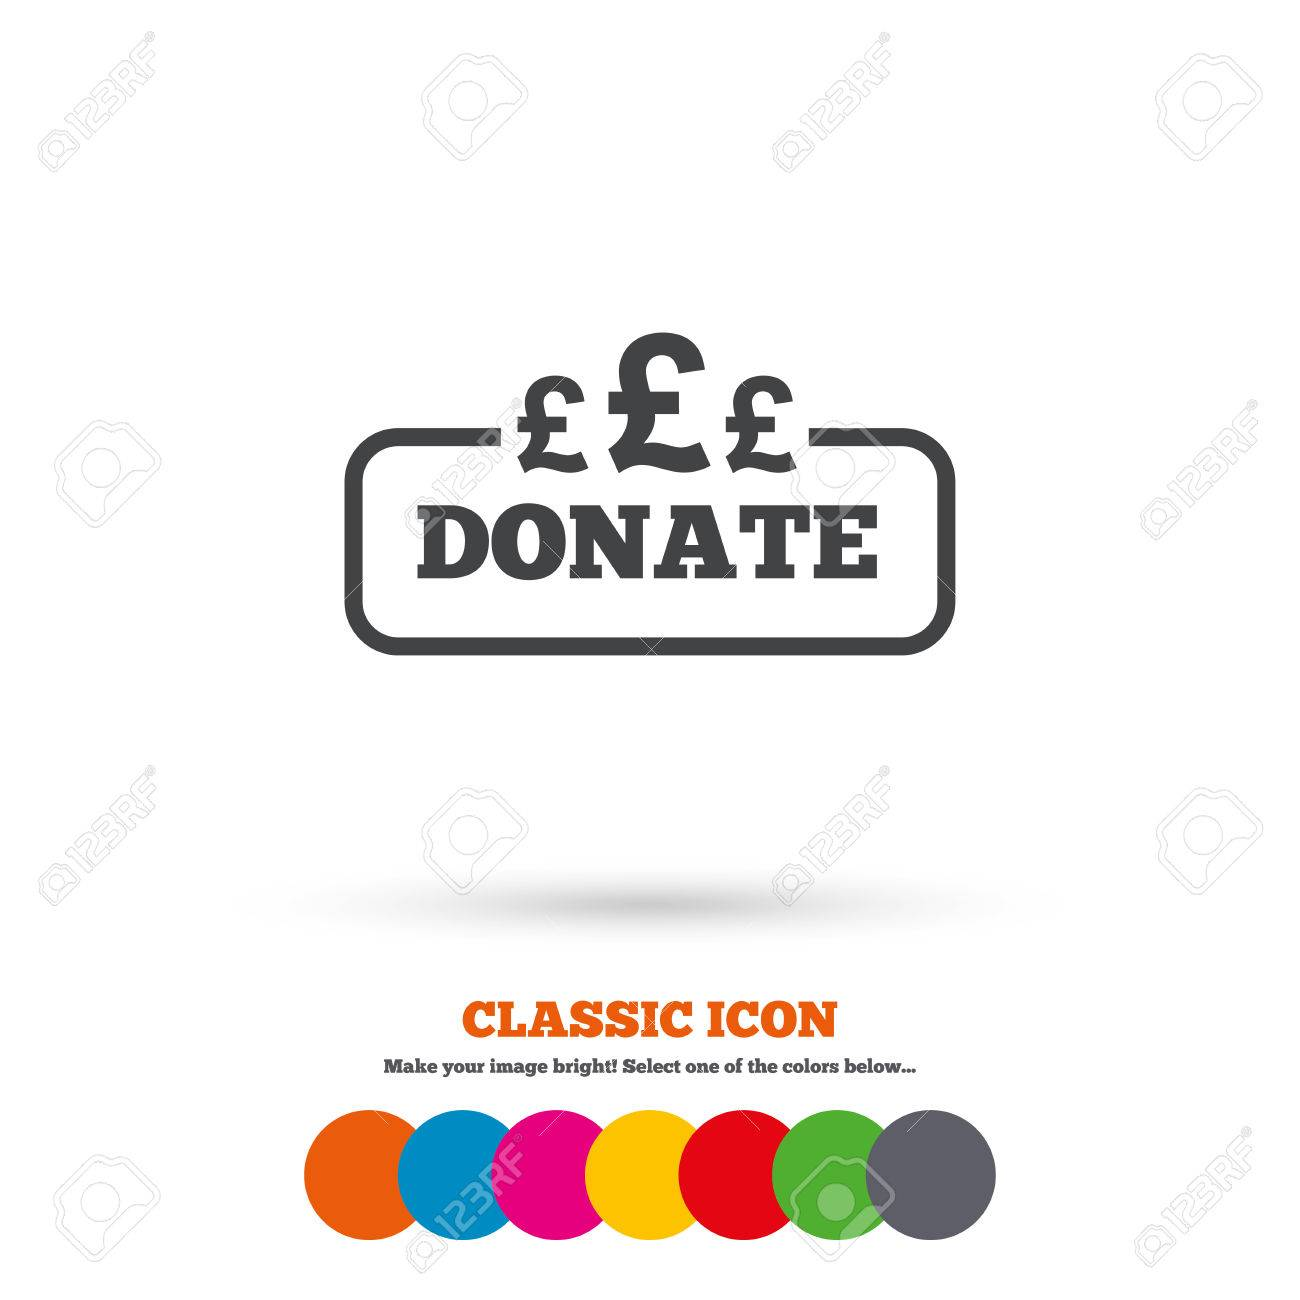 Donate Sign Icon Pounds Gbp Symbol Classic Flat Icon Colored